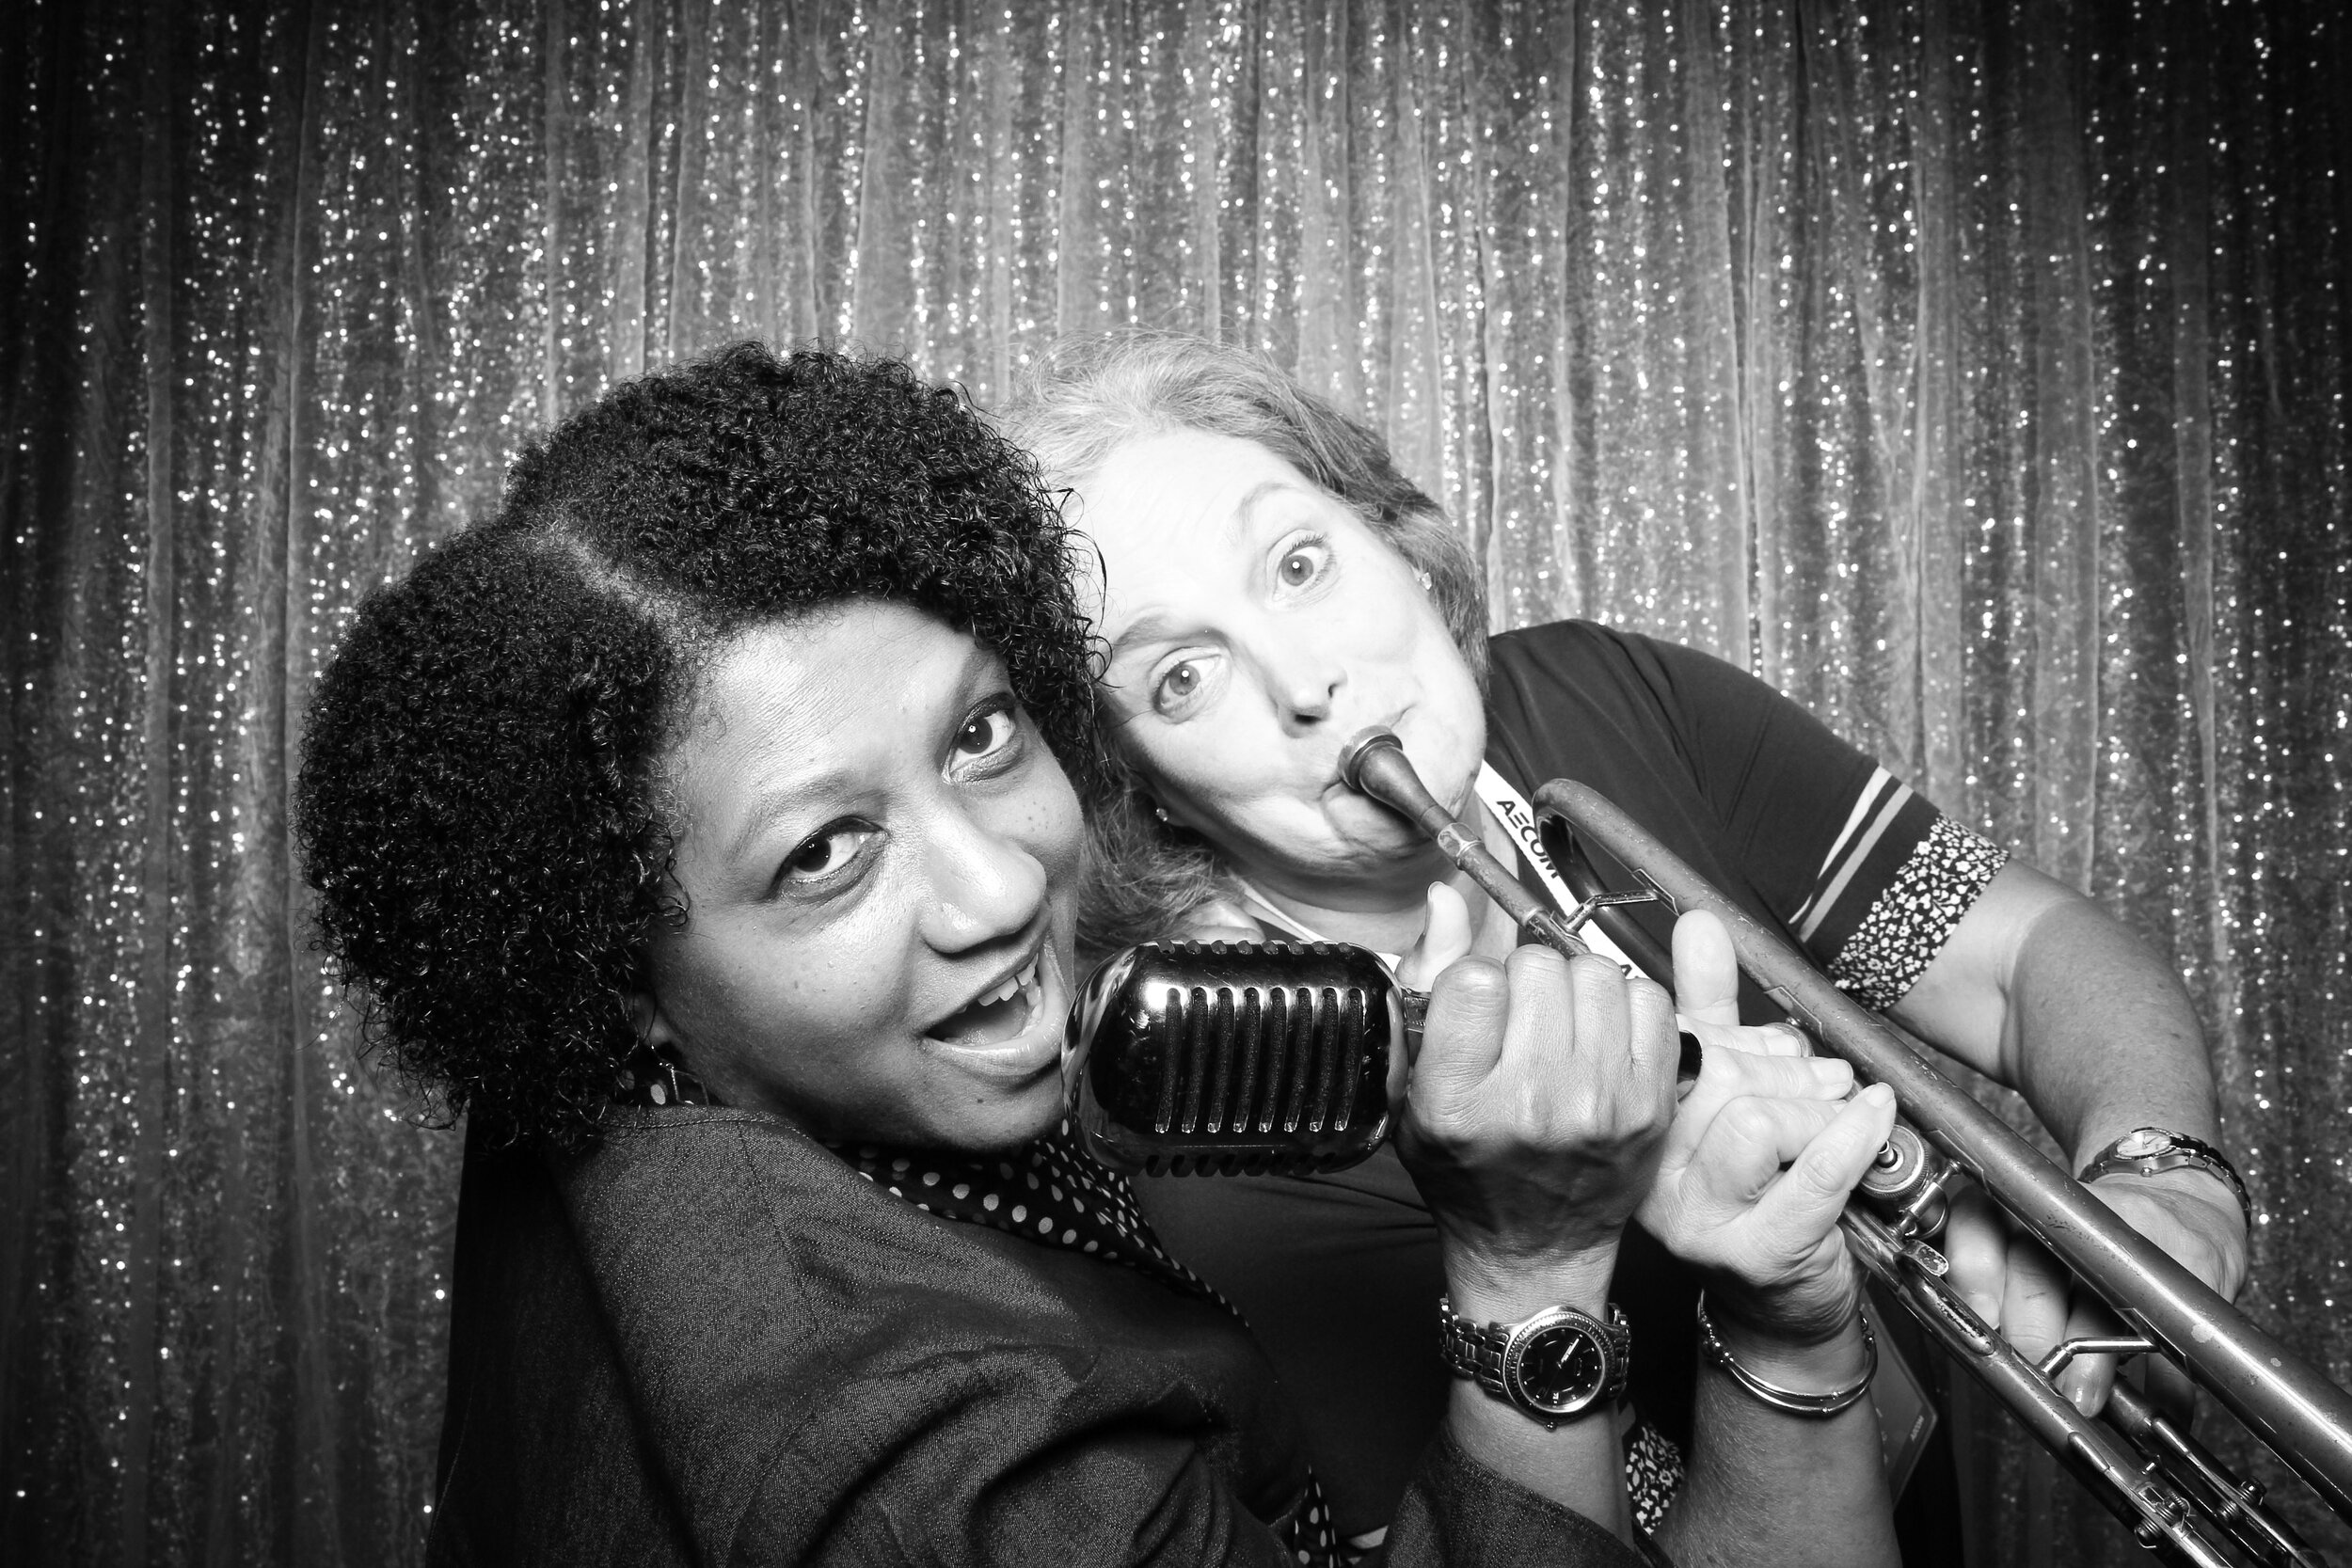 Chicago_Vintage_Wedding_Photobooth_House_of_Blues_20.jpg